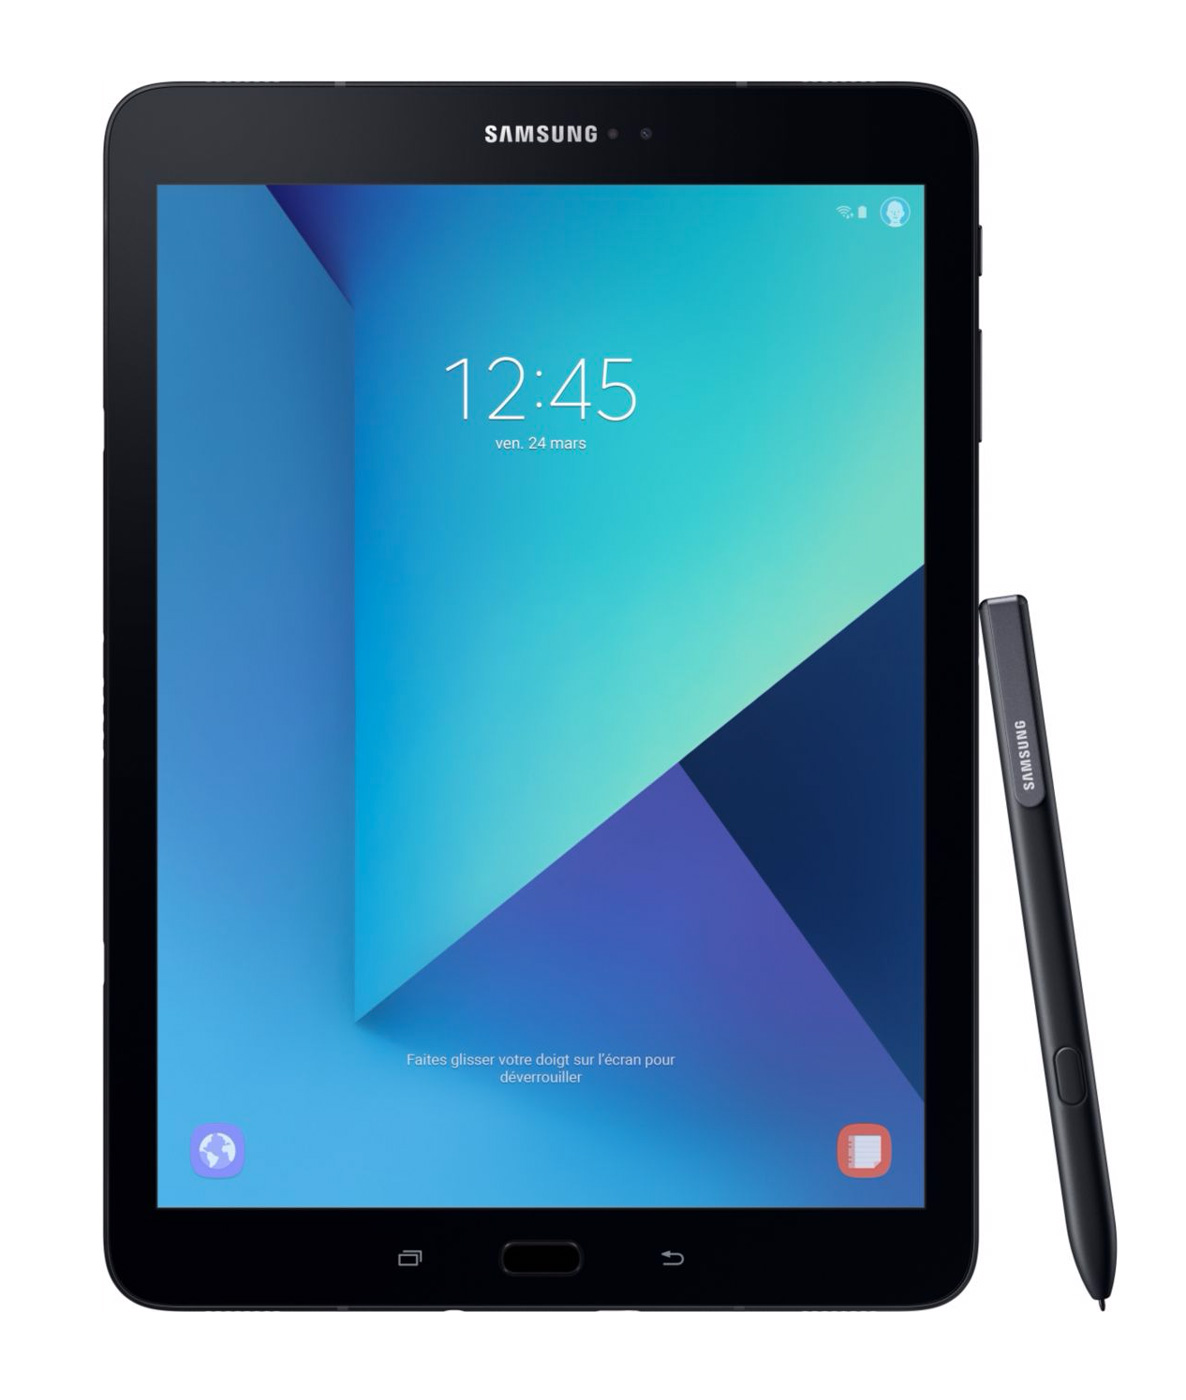 samsung galaxy tab s3 9 7 32 go 4g noire achetez au meilleur prix. Black Bedroom Furniture Sets. Home Design Ideas